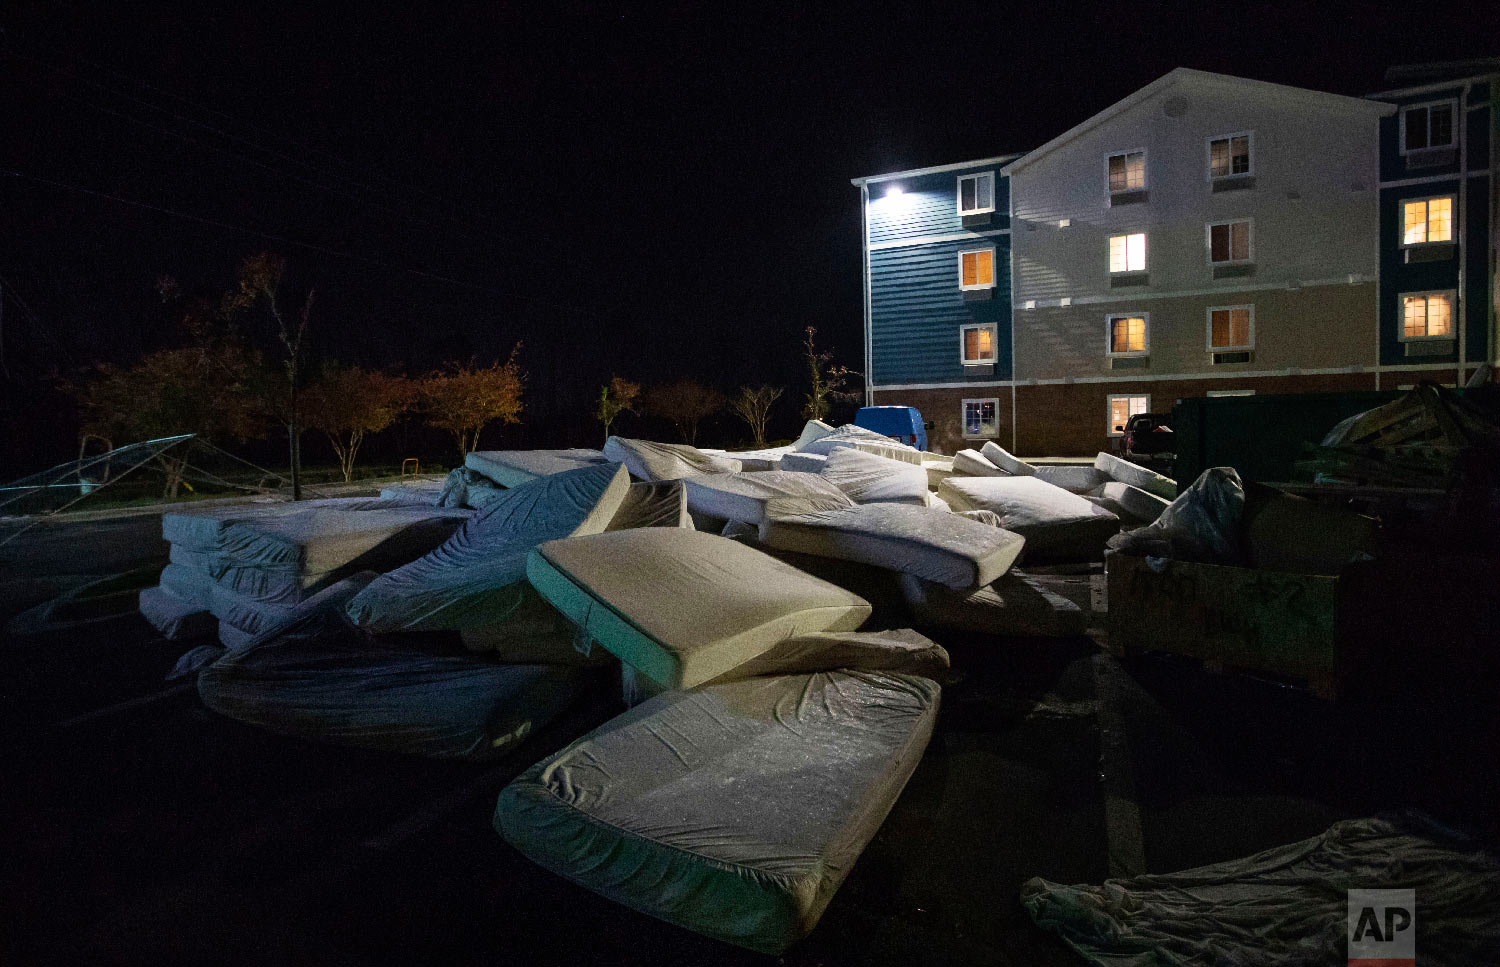 Mattresses are discarded from a damaged hotel from Hurricane Michael which is closed during renovation in Panama City, Fla, Thursday, Jan. 24, 2019. (AP Photo/David Goldman)